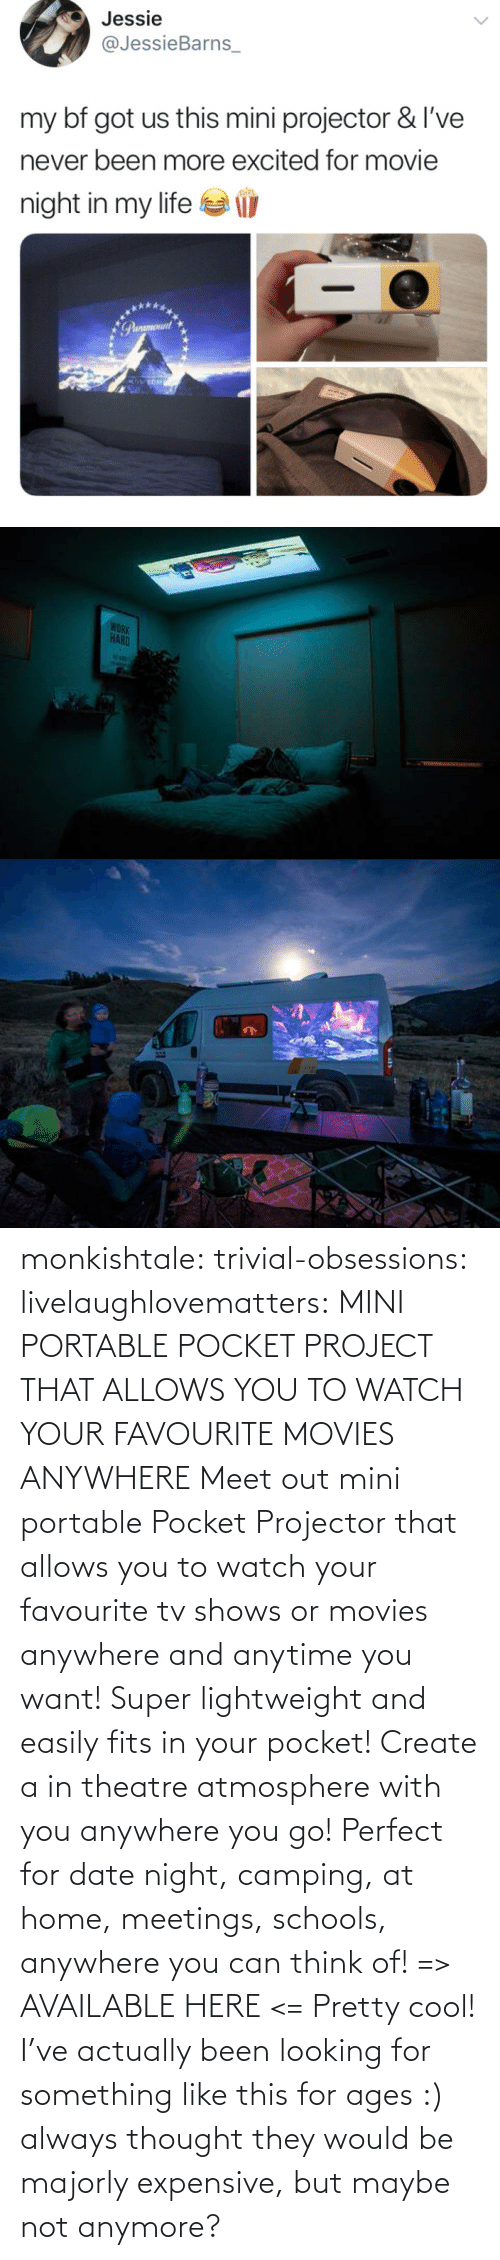 Would: monkishtale: trivial-obsessions:   livelaughlovematters:   MINI PORTABLE POCKET PROJECT THAT ALLOWS YOU TO WATCH YOUR FAVOURITE MOVIES ANYWHERE Meet out mini portable Pocket Projector that allows you to watch your favourite tv shows or movies anywhere and anytime you want! Super lightweight and easily fits in your pocket! Create a in theatre atmosphere with you anywhere you go! Perfect for date night, camping, at home, meetings, schools, anywhere you can think of! => AVAILABLE HERE <=    Pretty cool!    I've actually been looking for something like this for ages :) always thought they would be majorly expensive, but maybe not anymore?